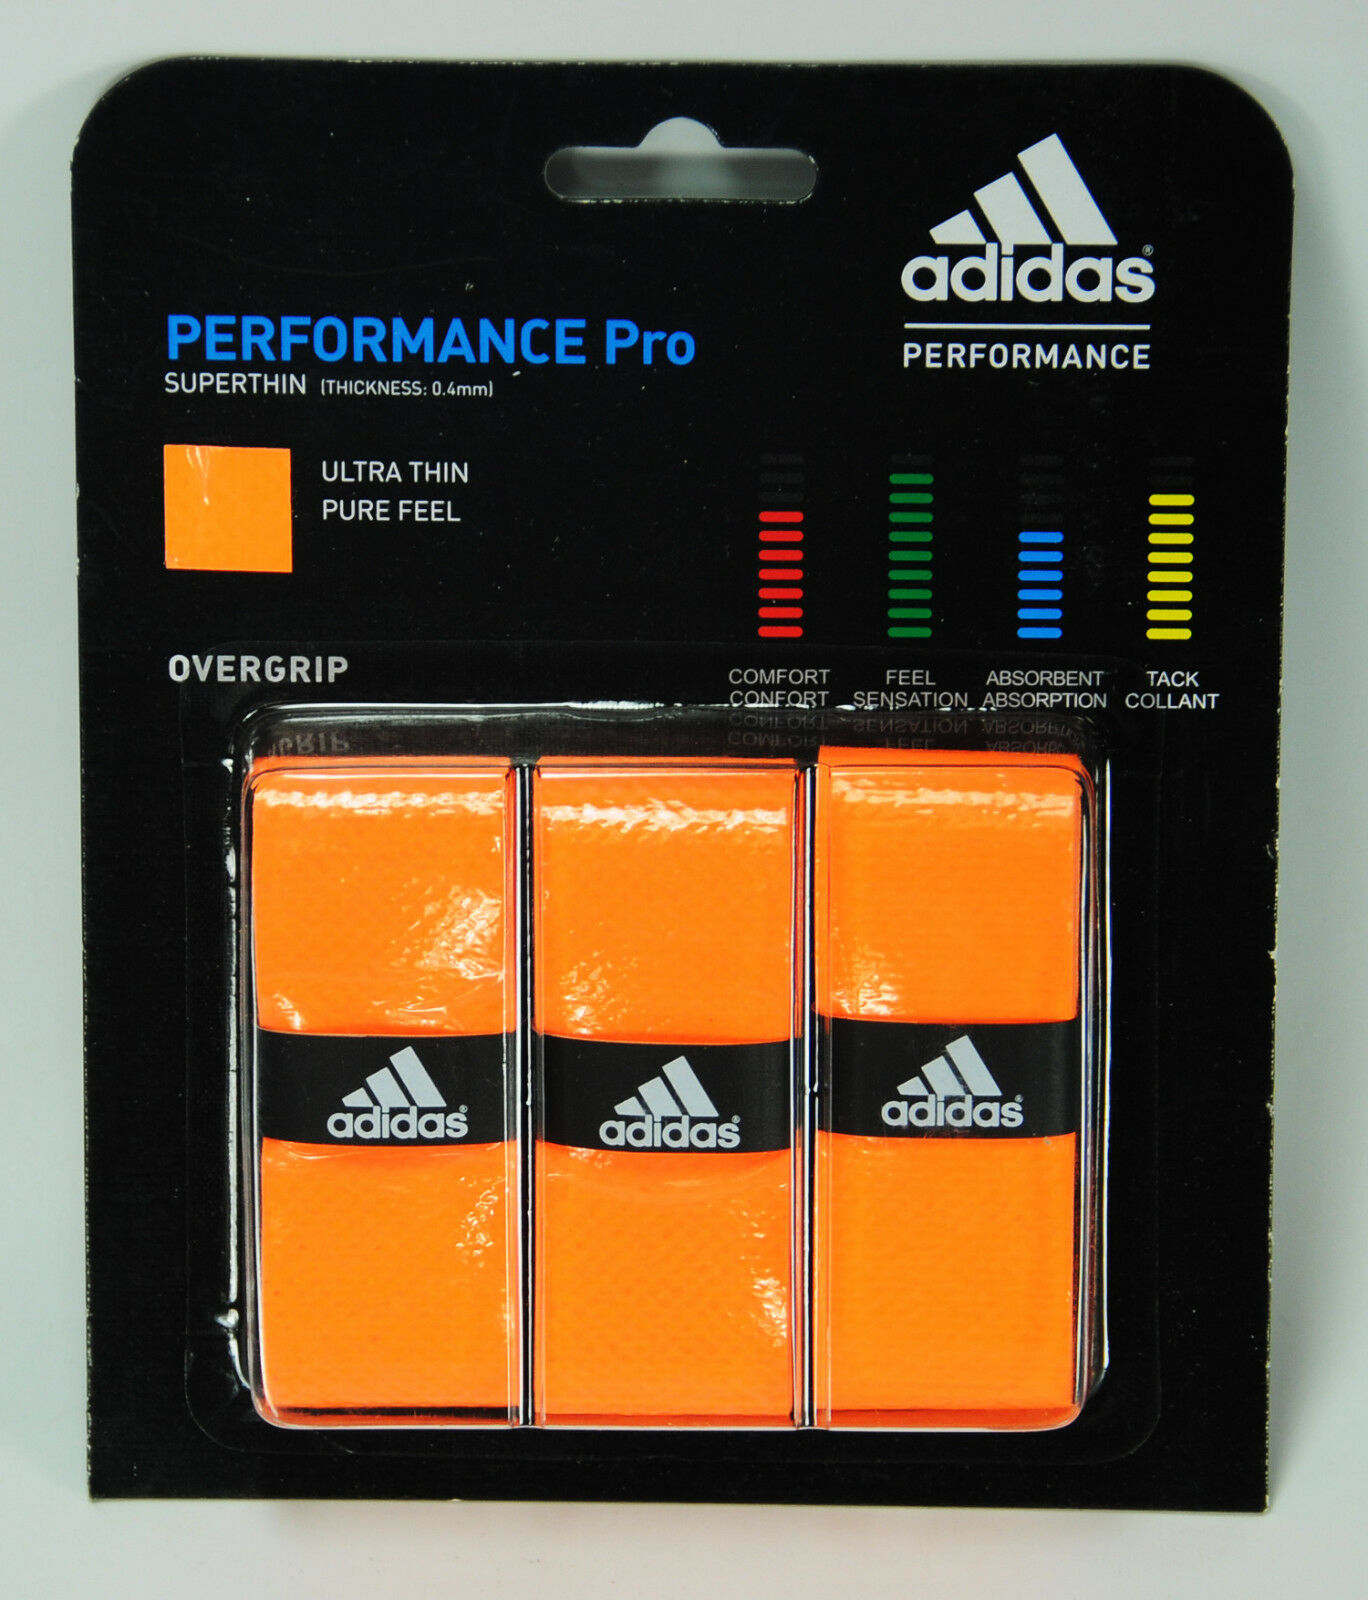 Lot of 10 adidas Badminton, Tennis, Squash, 0.4mm Ultra Thin Overgrips -5 colors